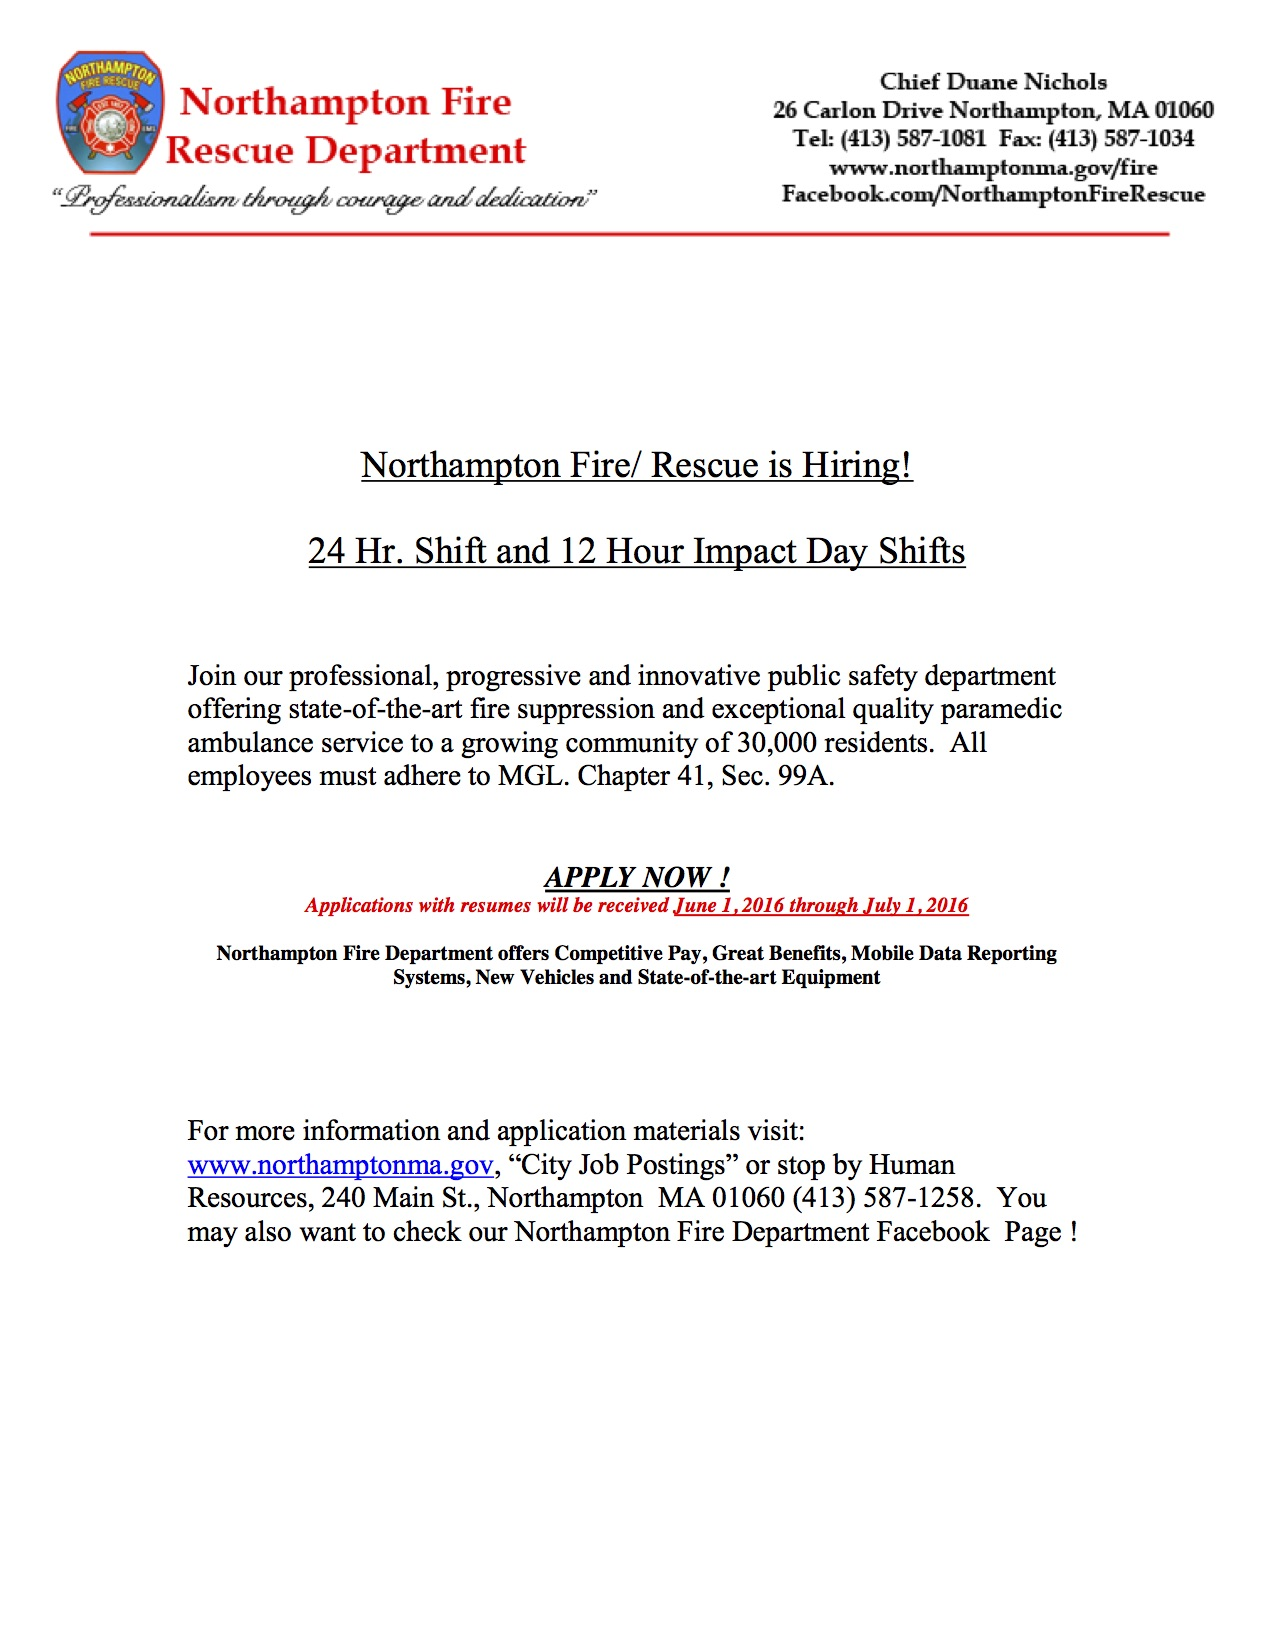 NFR is Hiring 2016.jpg